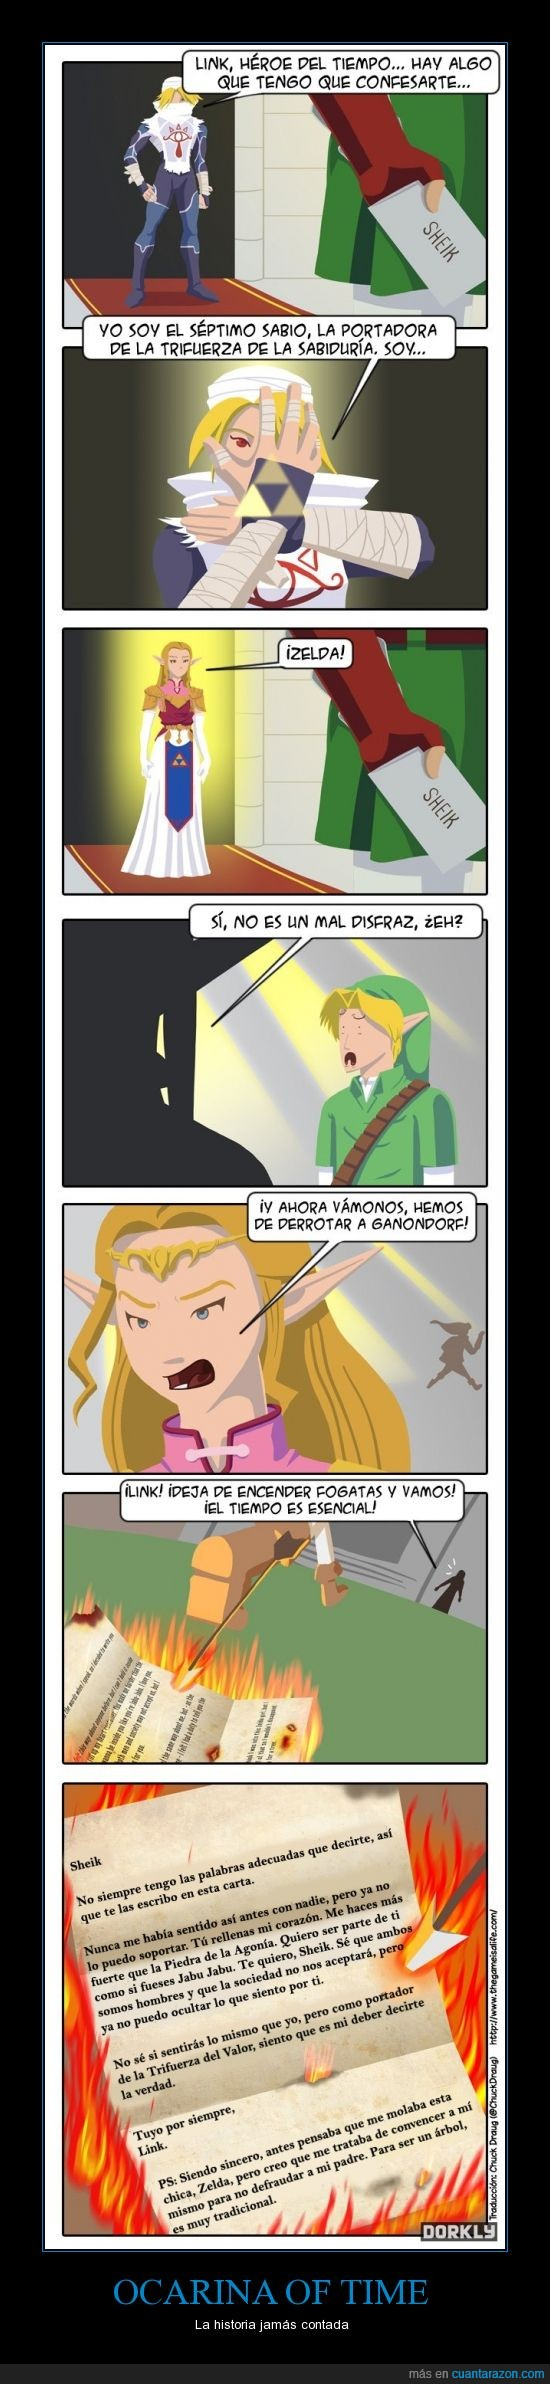 homosexualidad,legend of zelda,link,ocarina of time,sheik,zelda